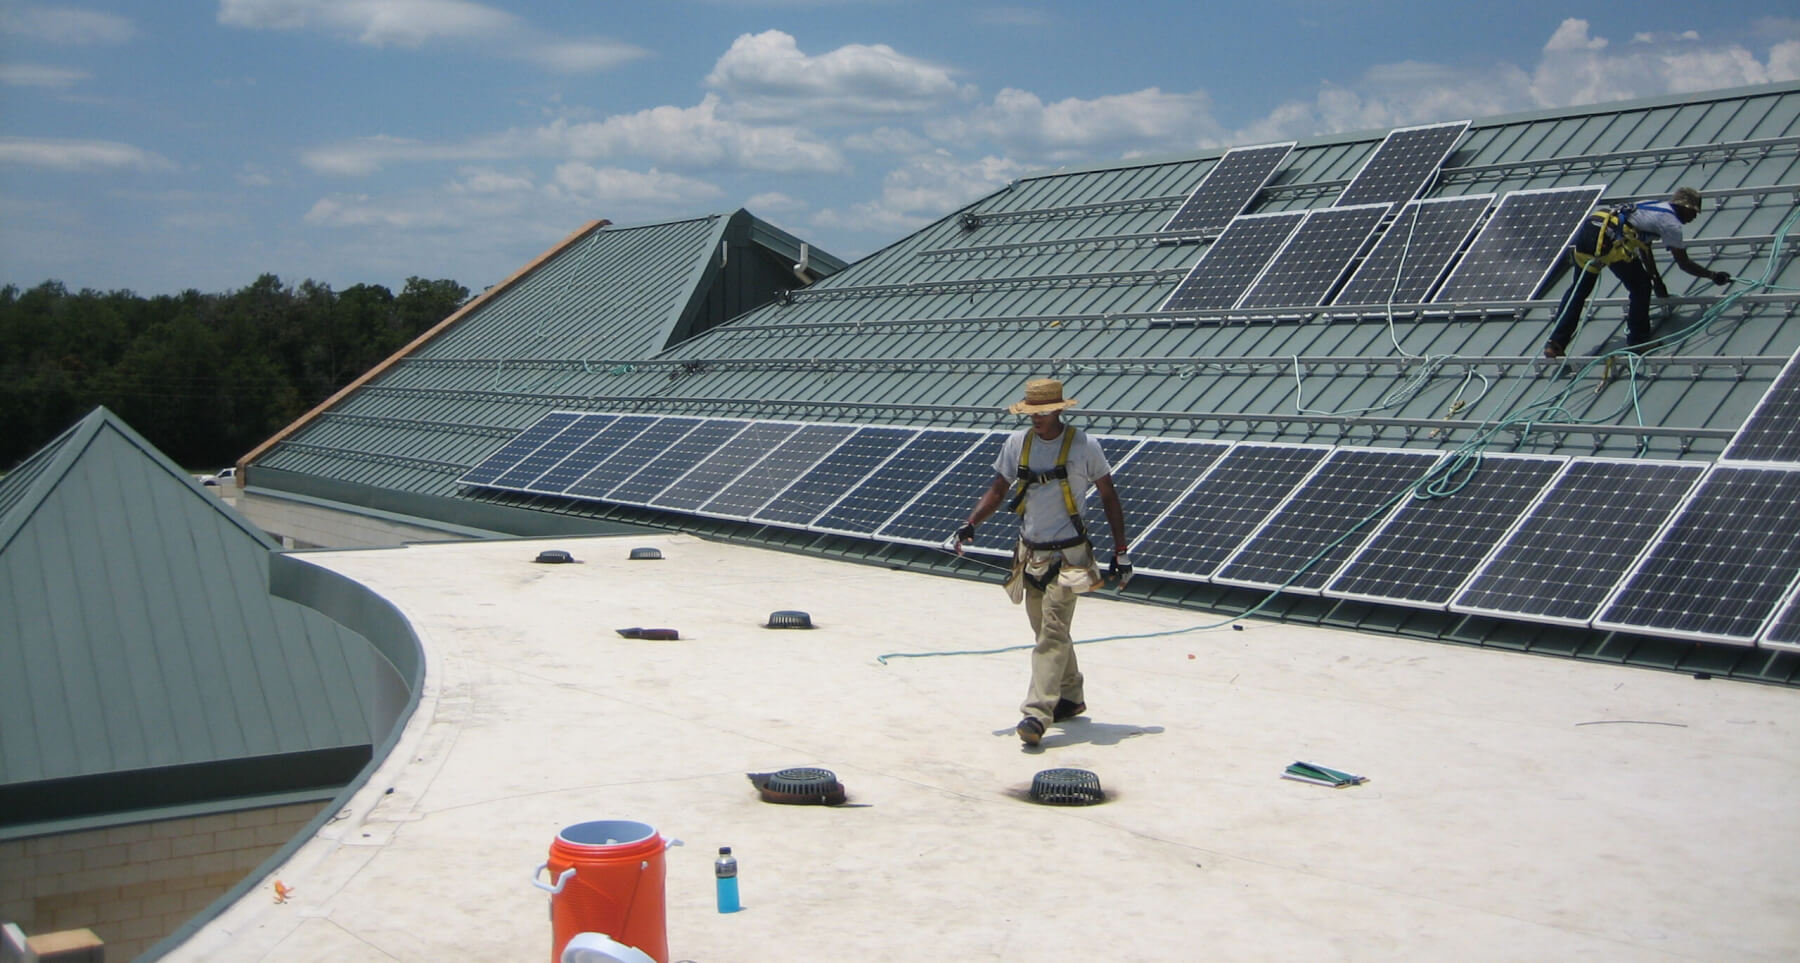 Workers installing solar panels on the roof